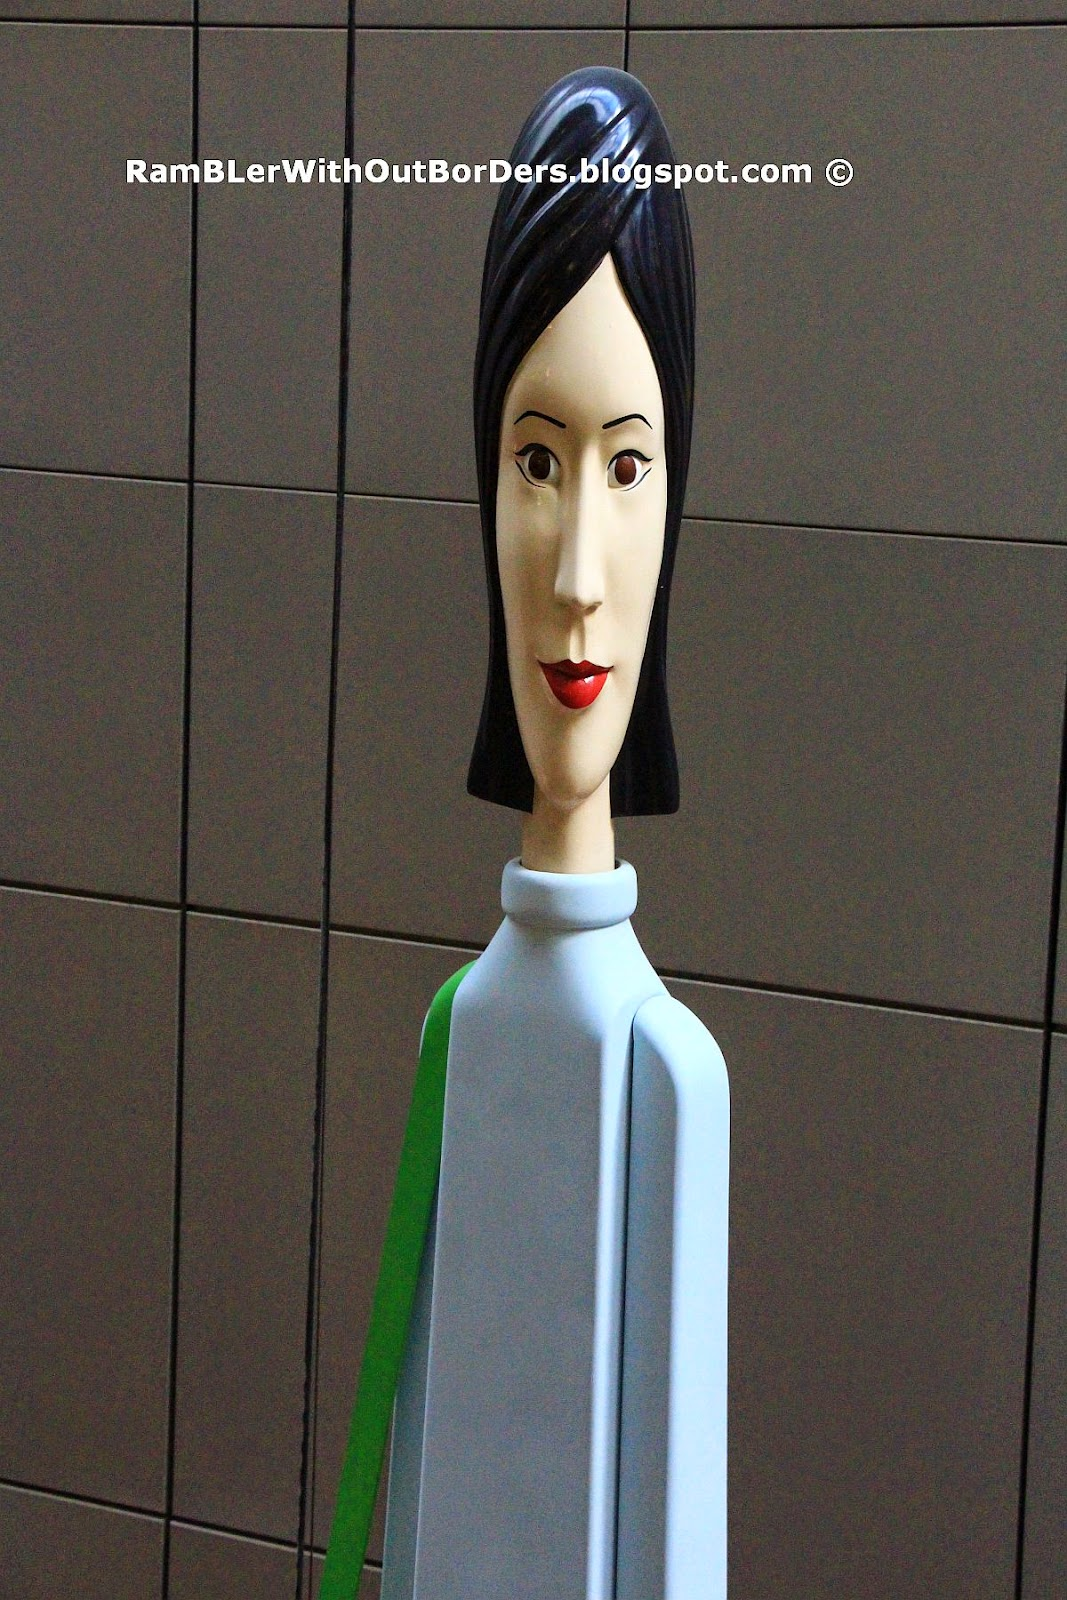 Tall Girl (2009), Orchard Central, Singapore